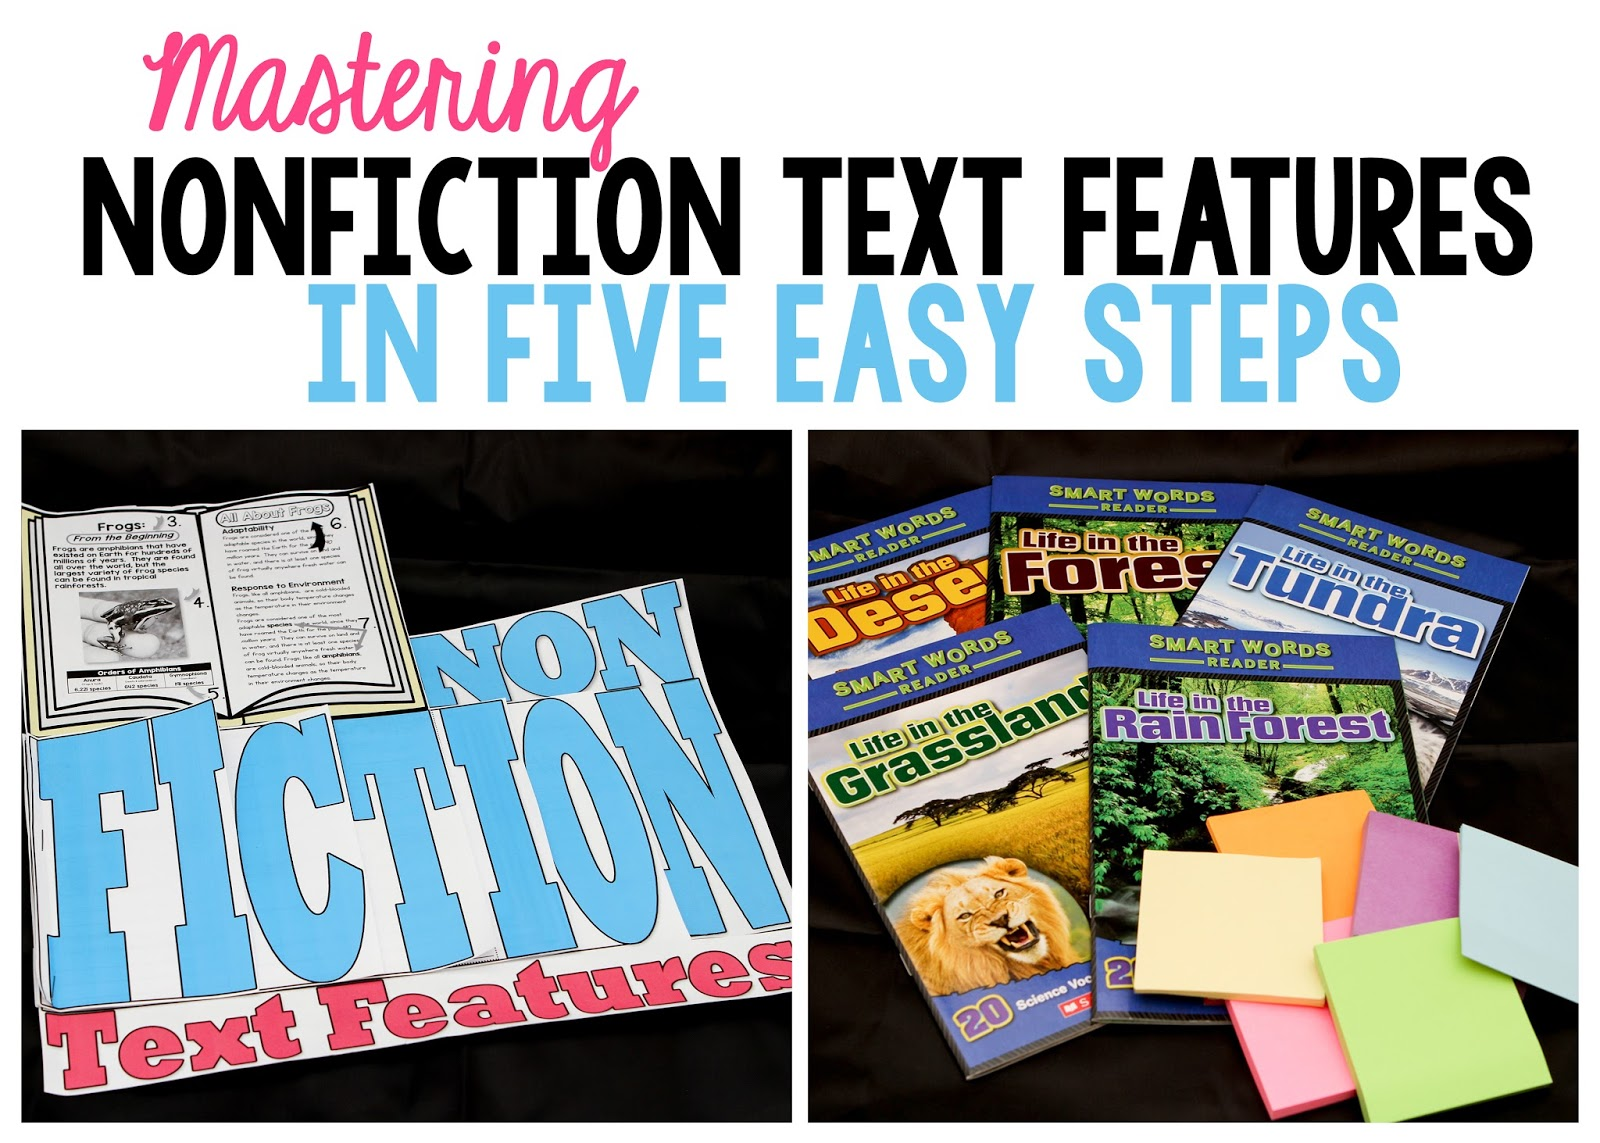 Workbooks text features reading comprehension worksheets : Nonfiction Text Features Mastered in 5 Easy Steps - Simply Skilled ...